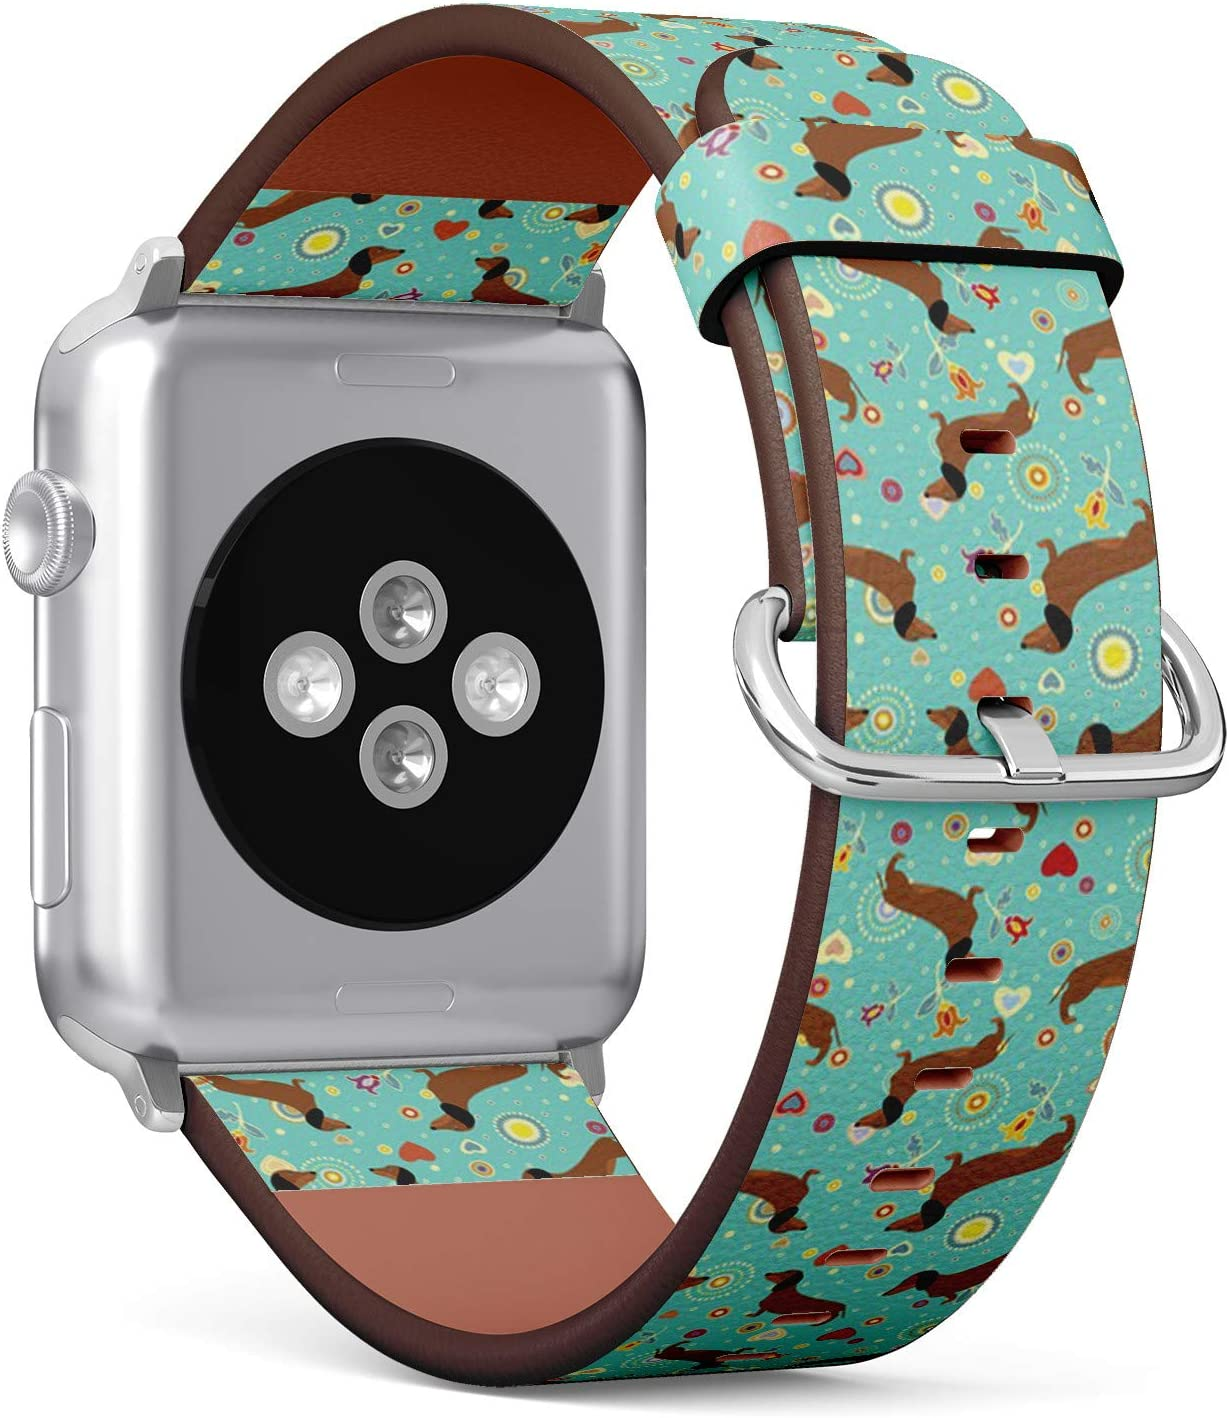 Compatible with Apple Watch (Big Version) 42 / 44mm Leather Wristband Bracelet with Stainless Steel Clasp and Adapters - Dachshunds